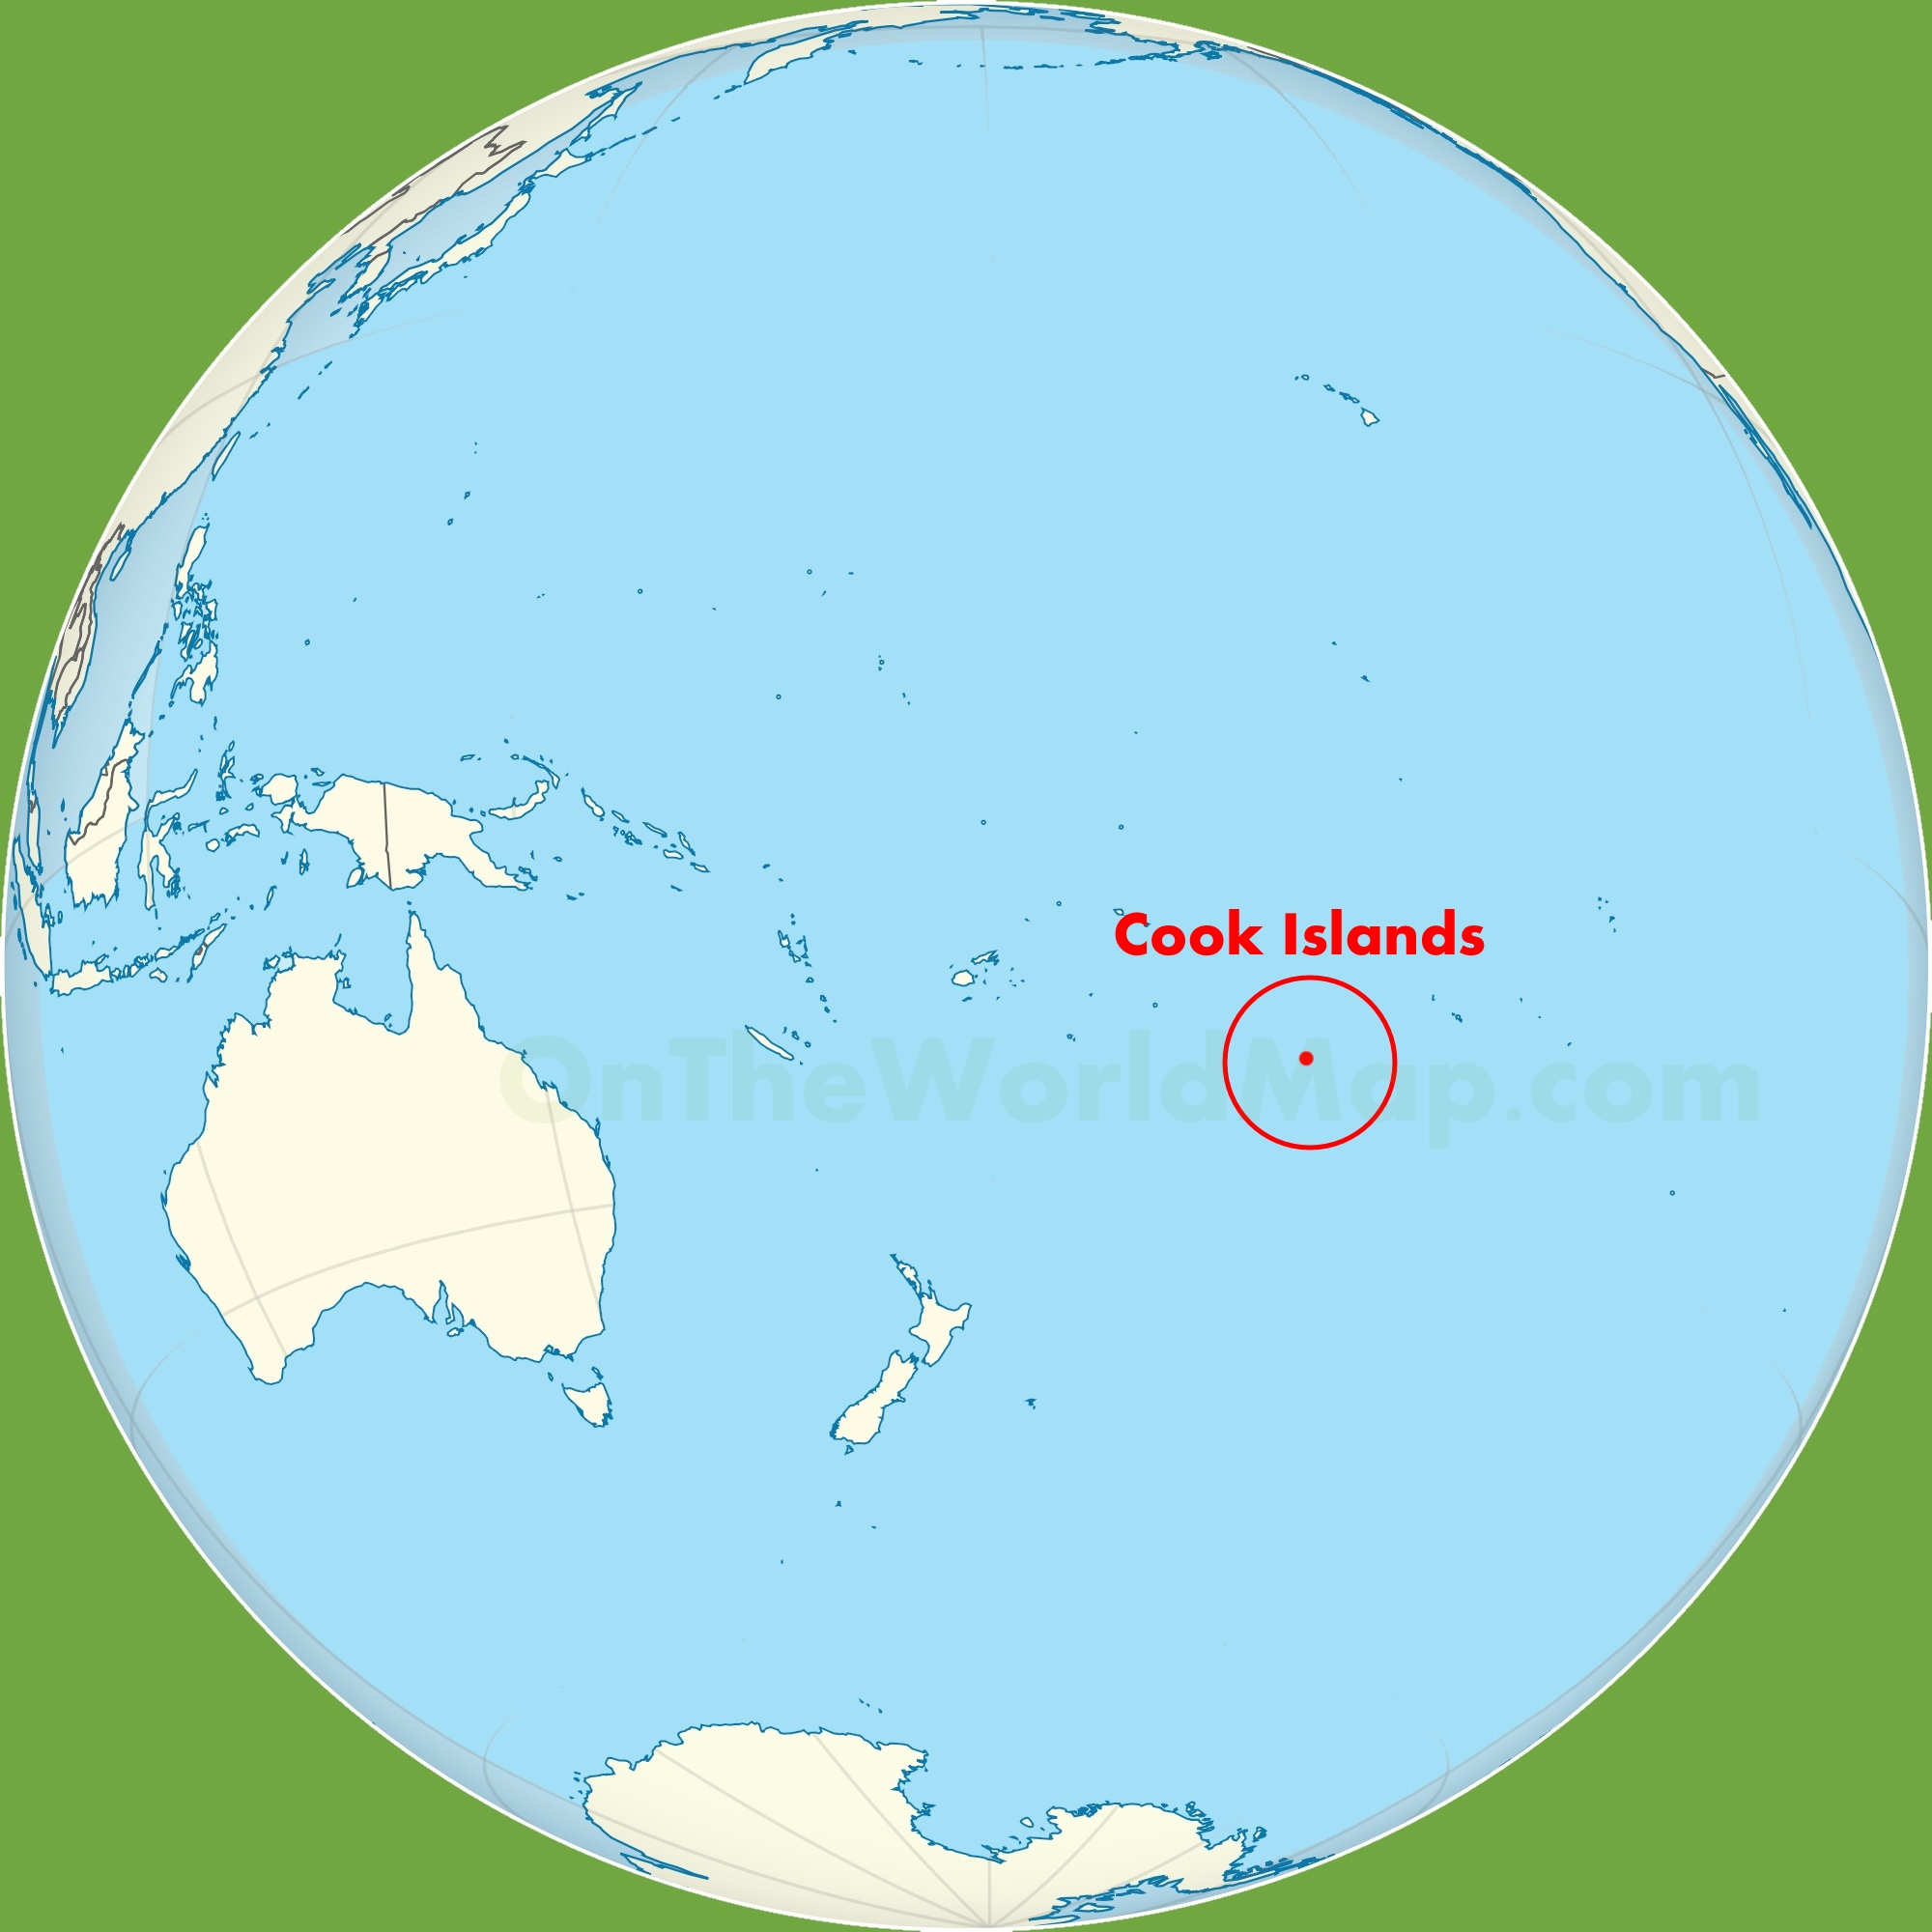 Cook Islands On World Map.Cook Islands Maps Maps Of Cook Islands